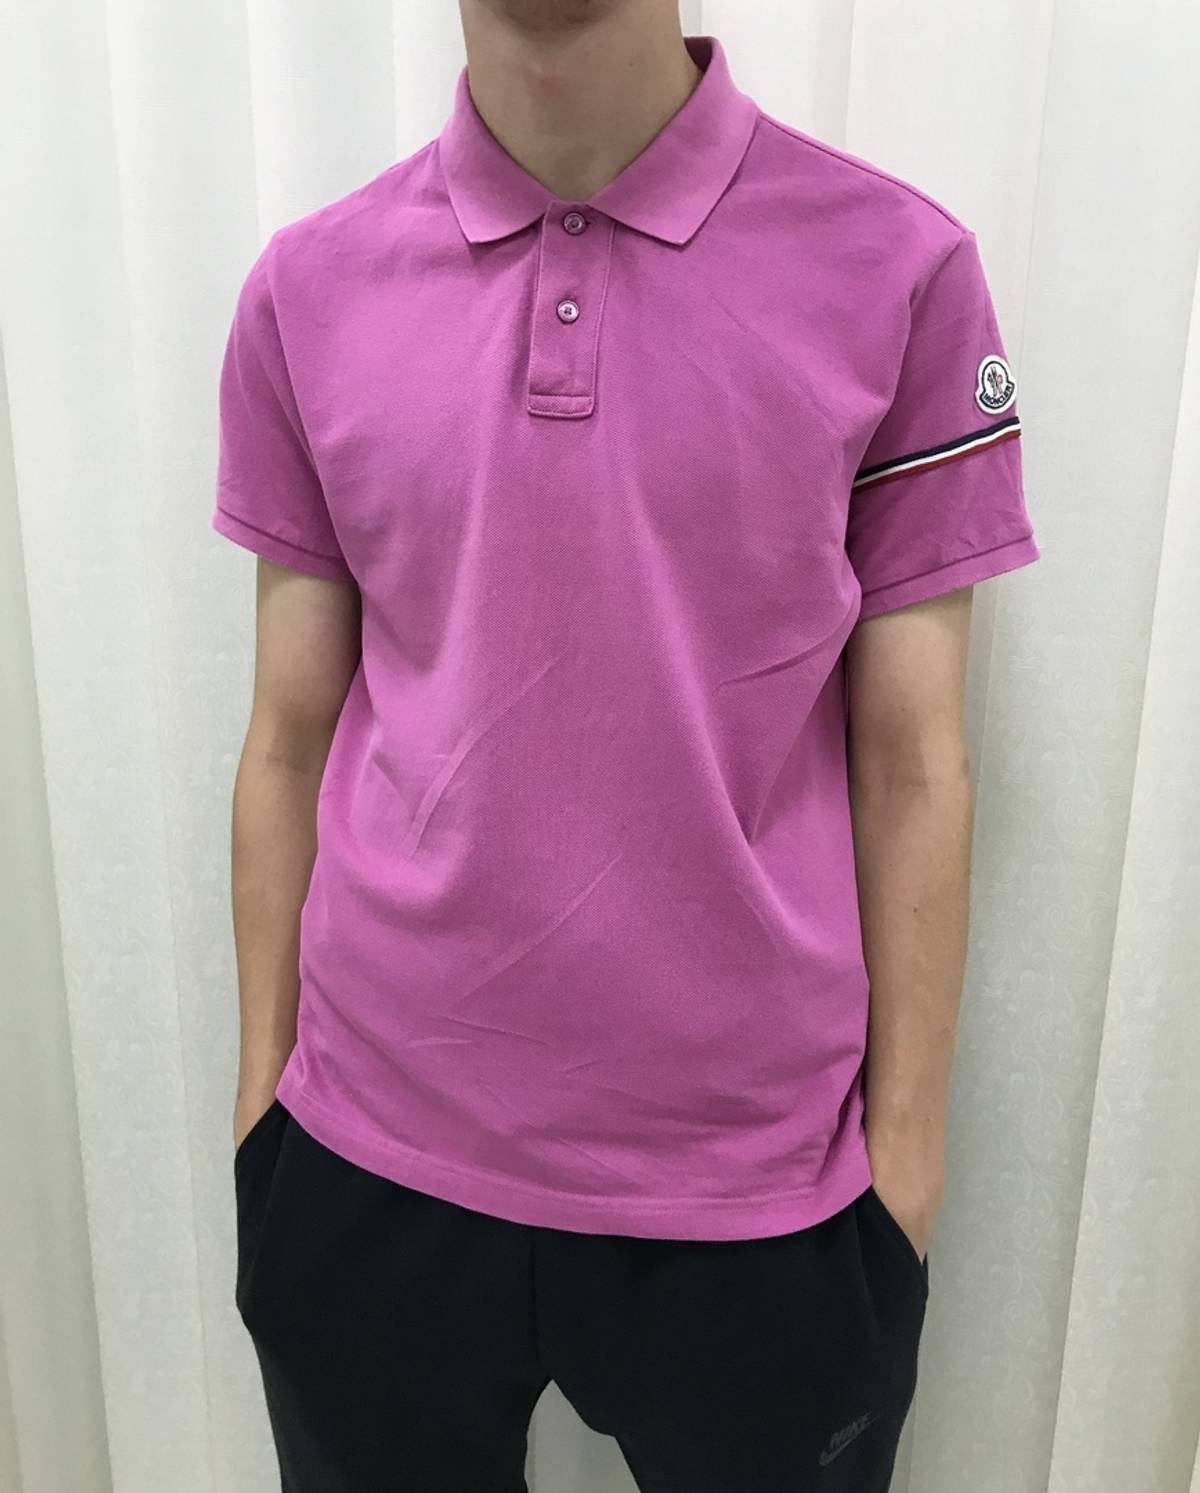 506f482bc Moncler Moncler Polo Shirt Size l - Polos for Sale - Grailed